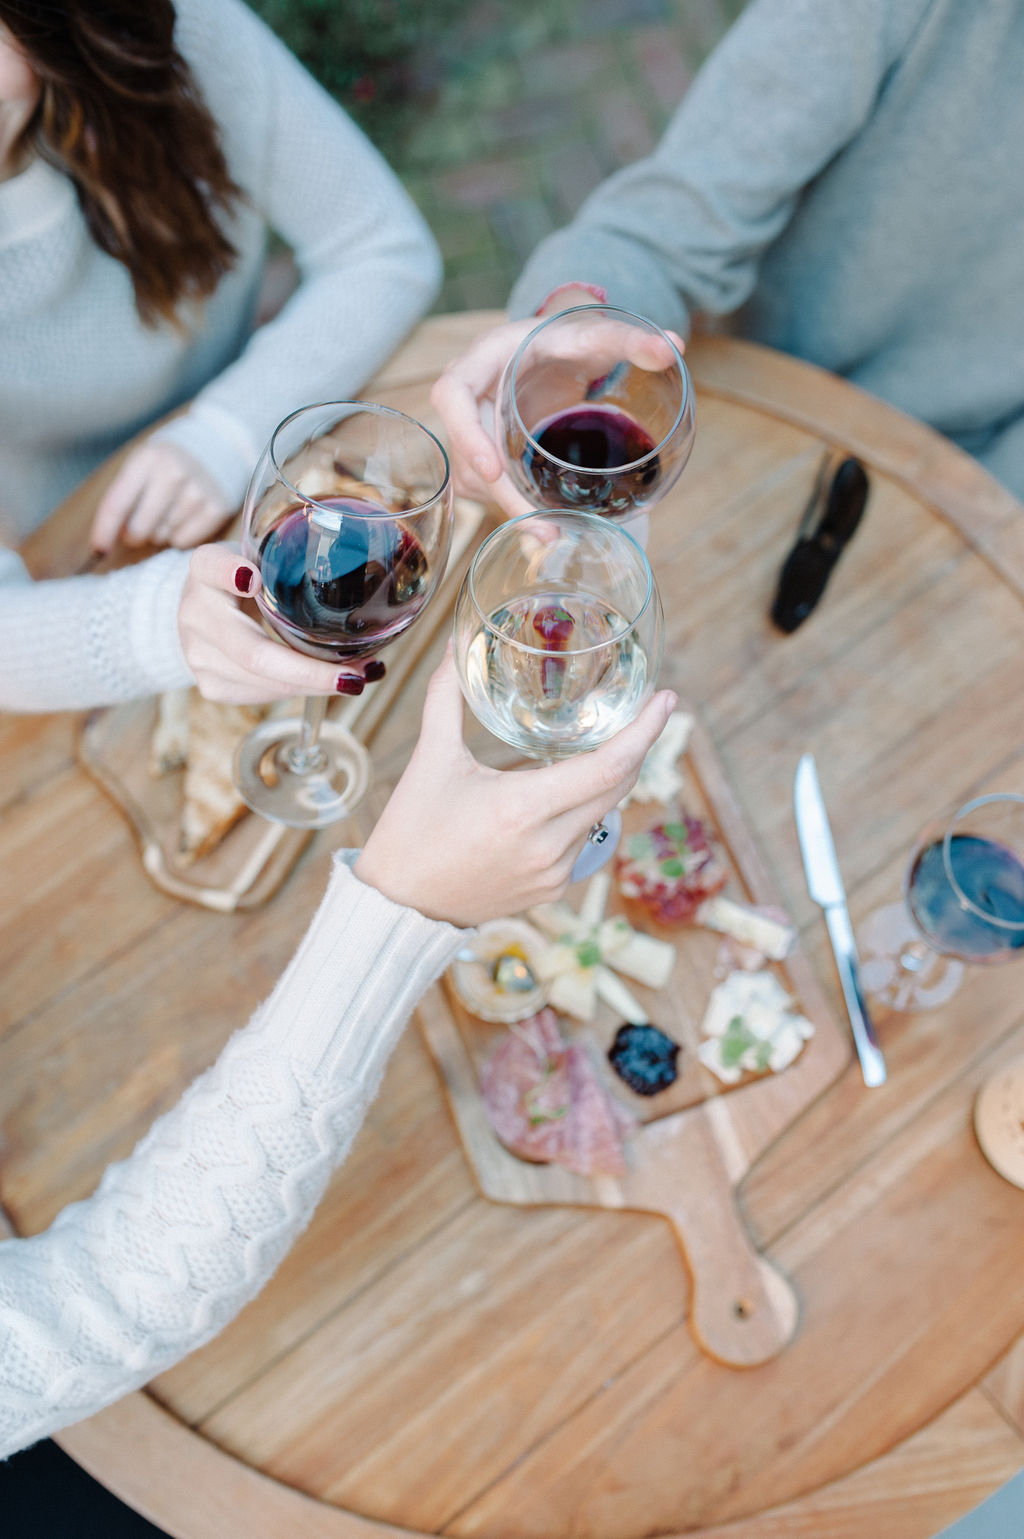 Three friends raising glasses of wine over a charcuterie board